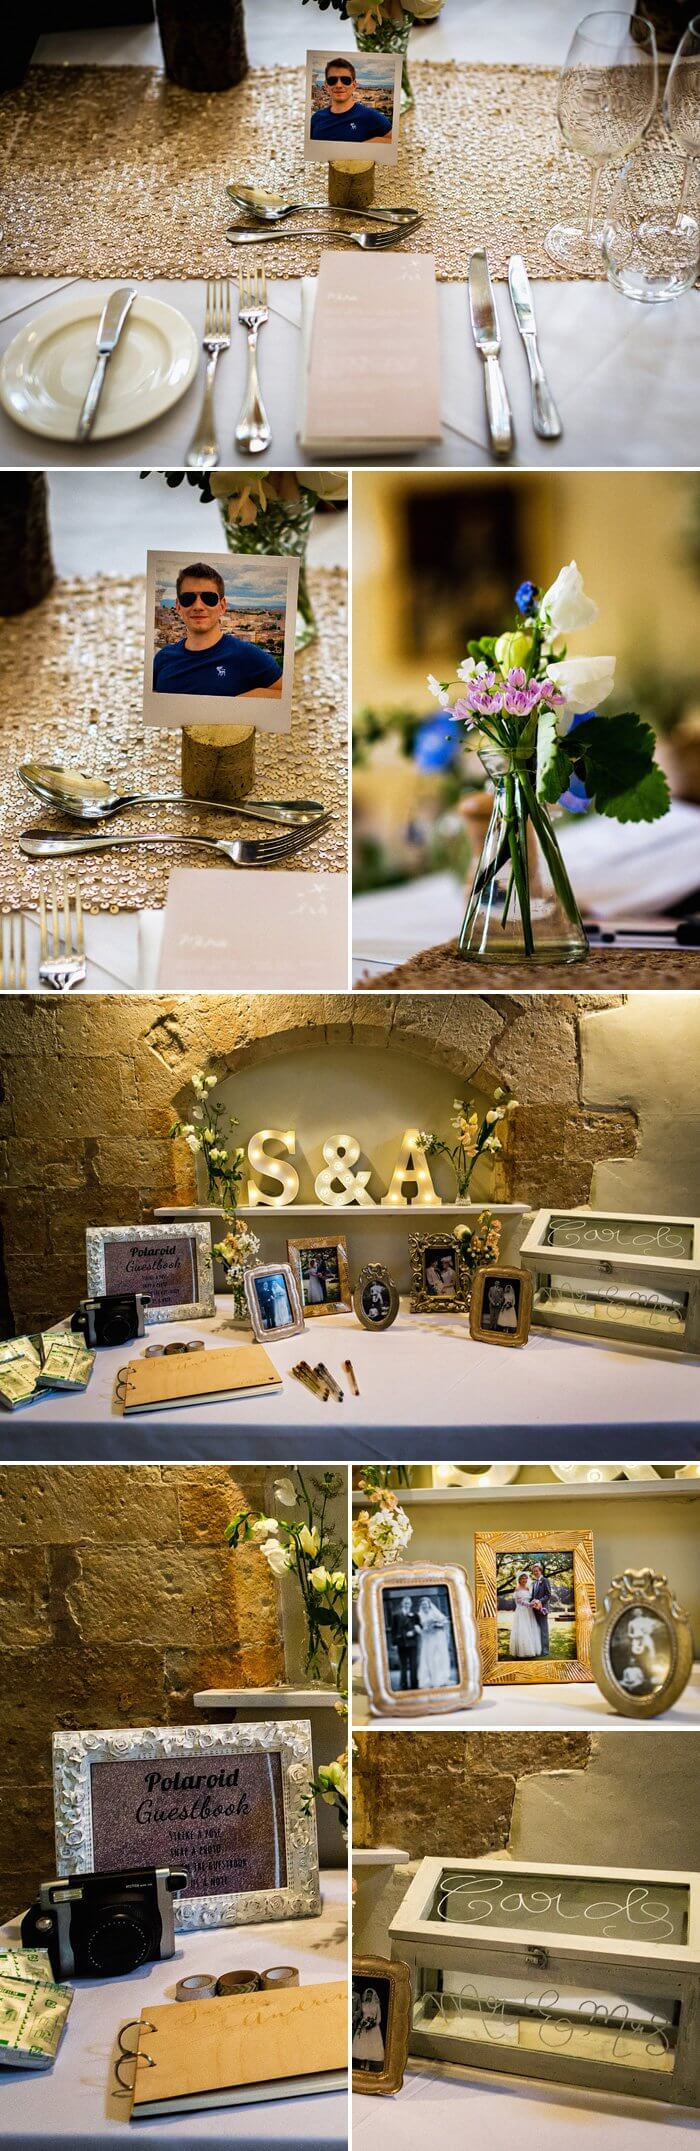 1632424767 533 English wedding in the castle 2 charming photo stories - English wedding in the castle   2 charming photo stories with many inspirations